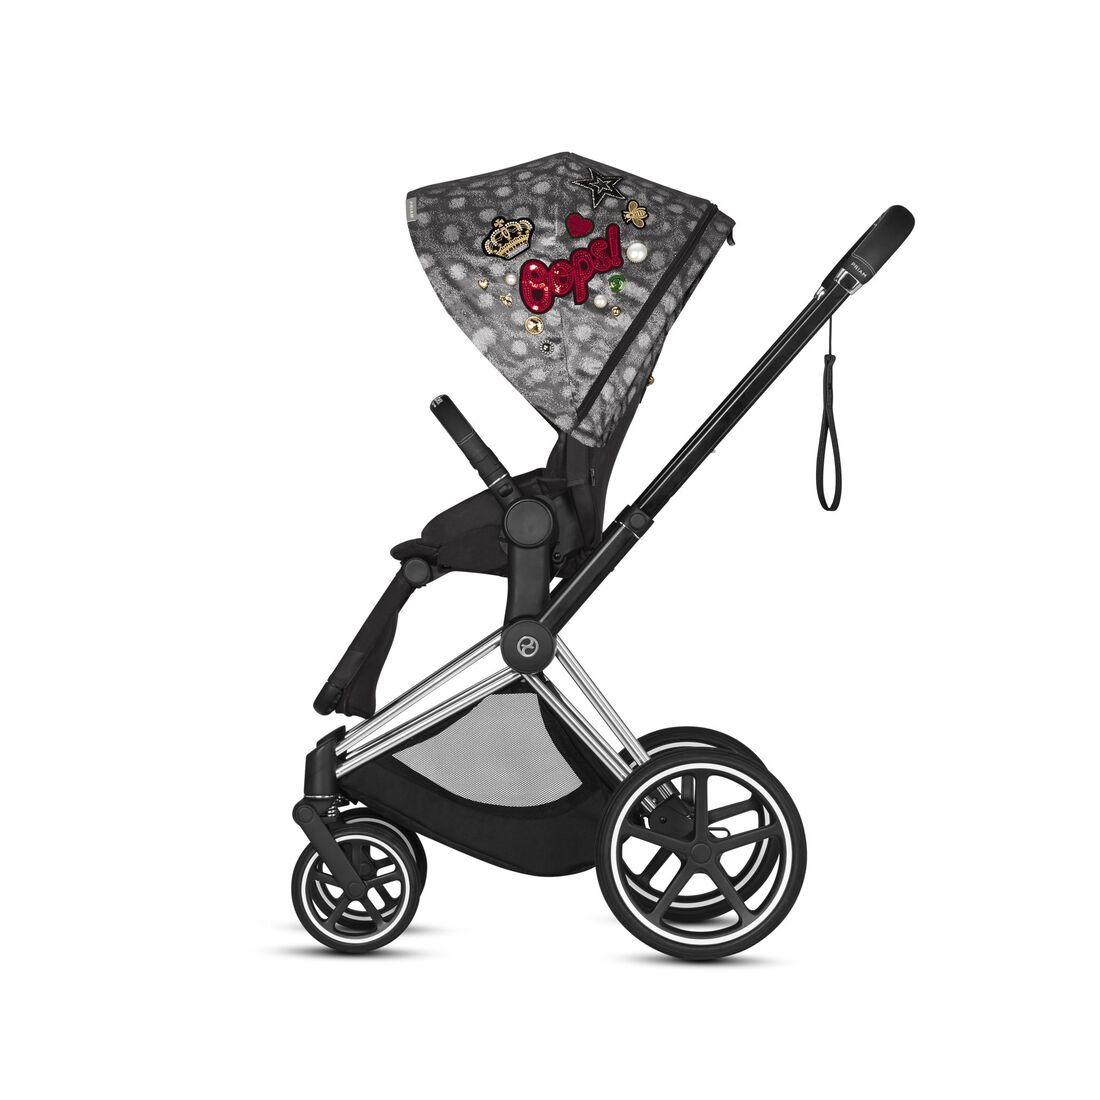 CYBEX Priam Sitzpaket - Rebellious in Rebellious large Bild 3